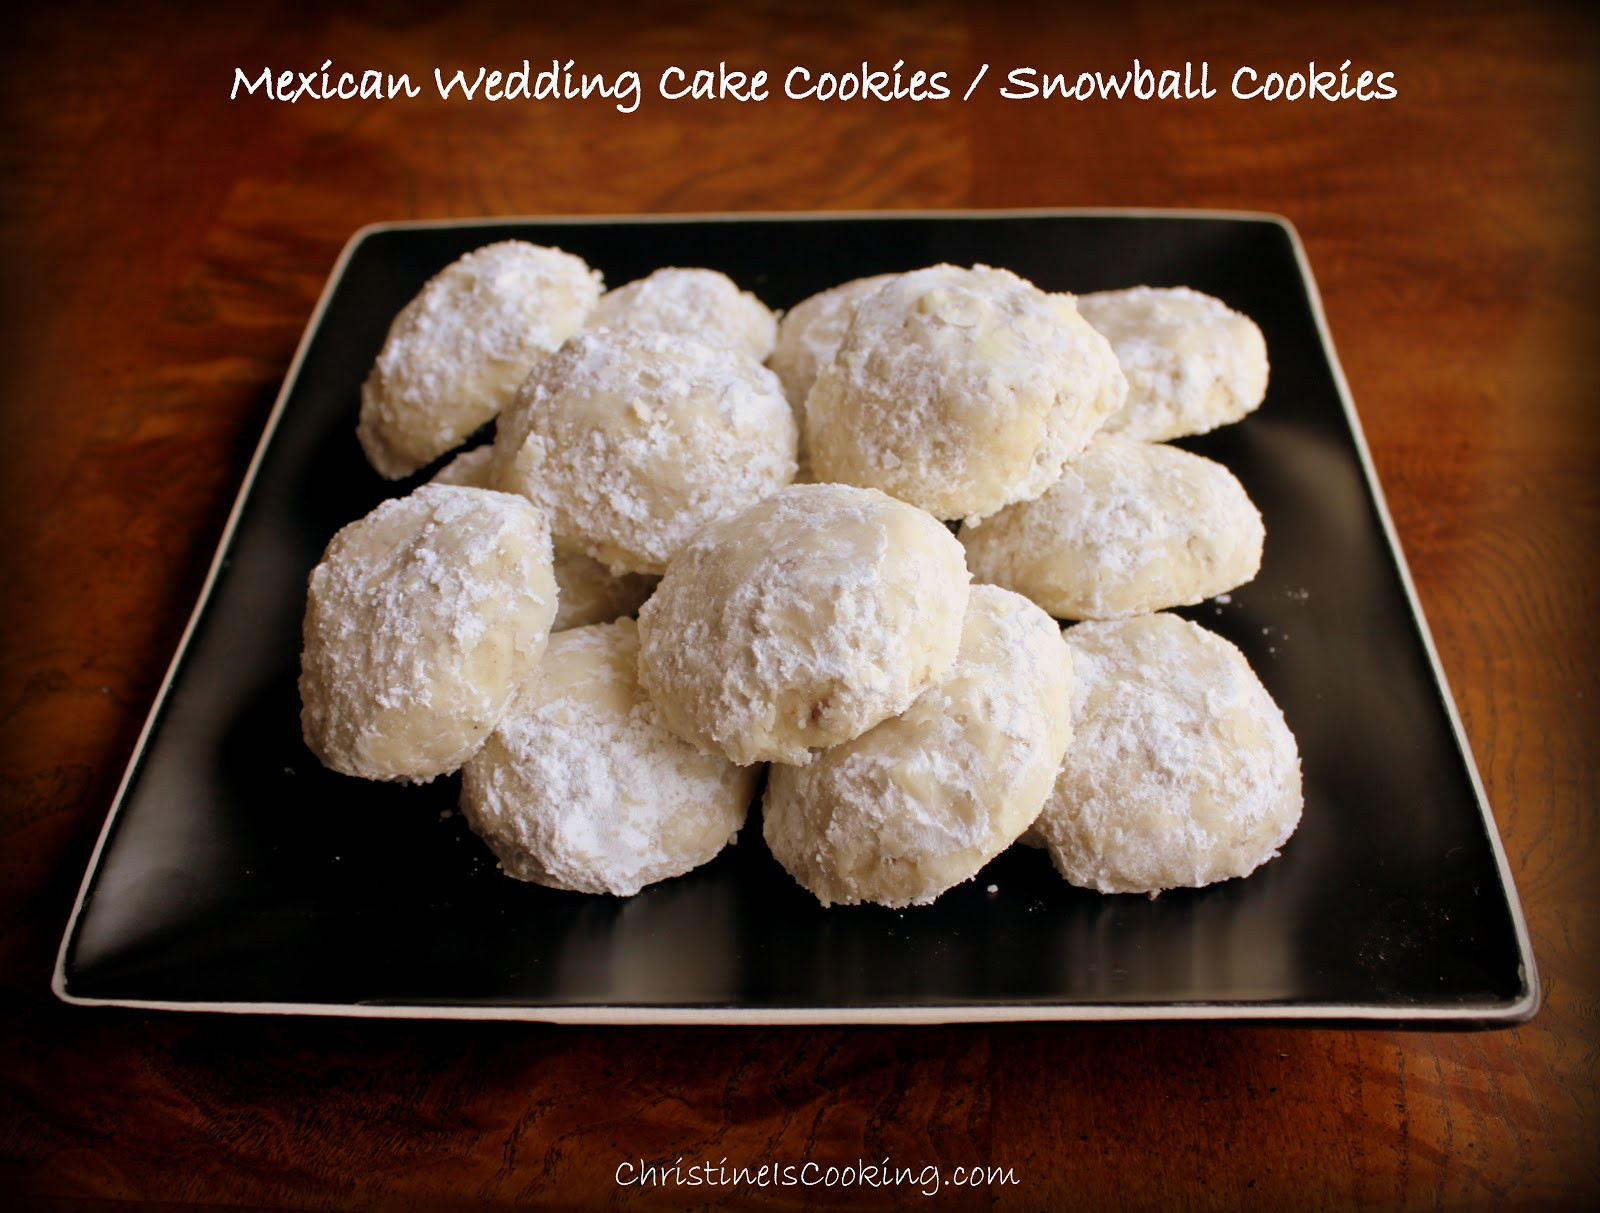 Wedding Cake Cookies Recipes  christineiscooking Mexican Wedding Cake Cookies